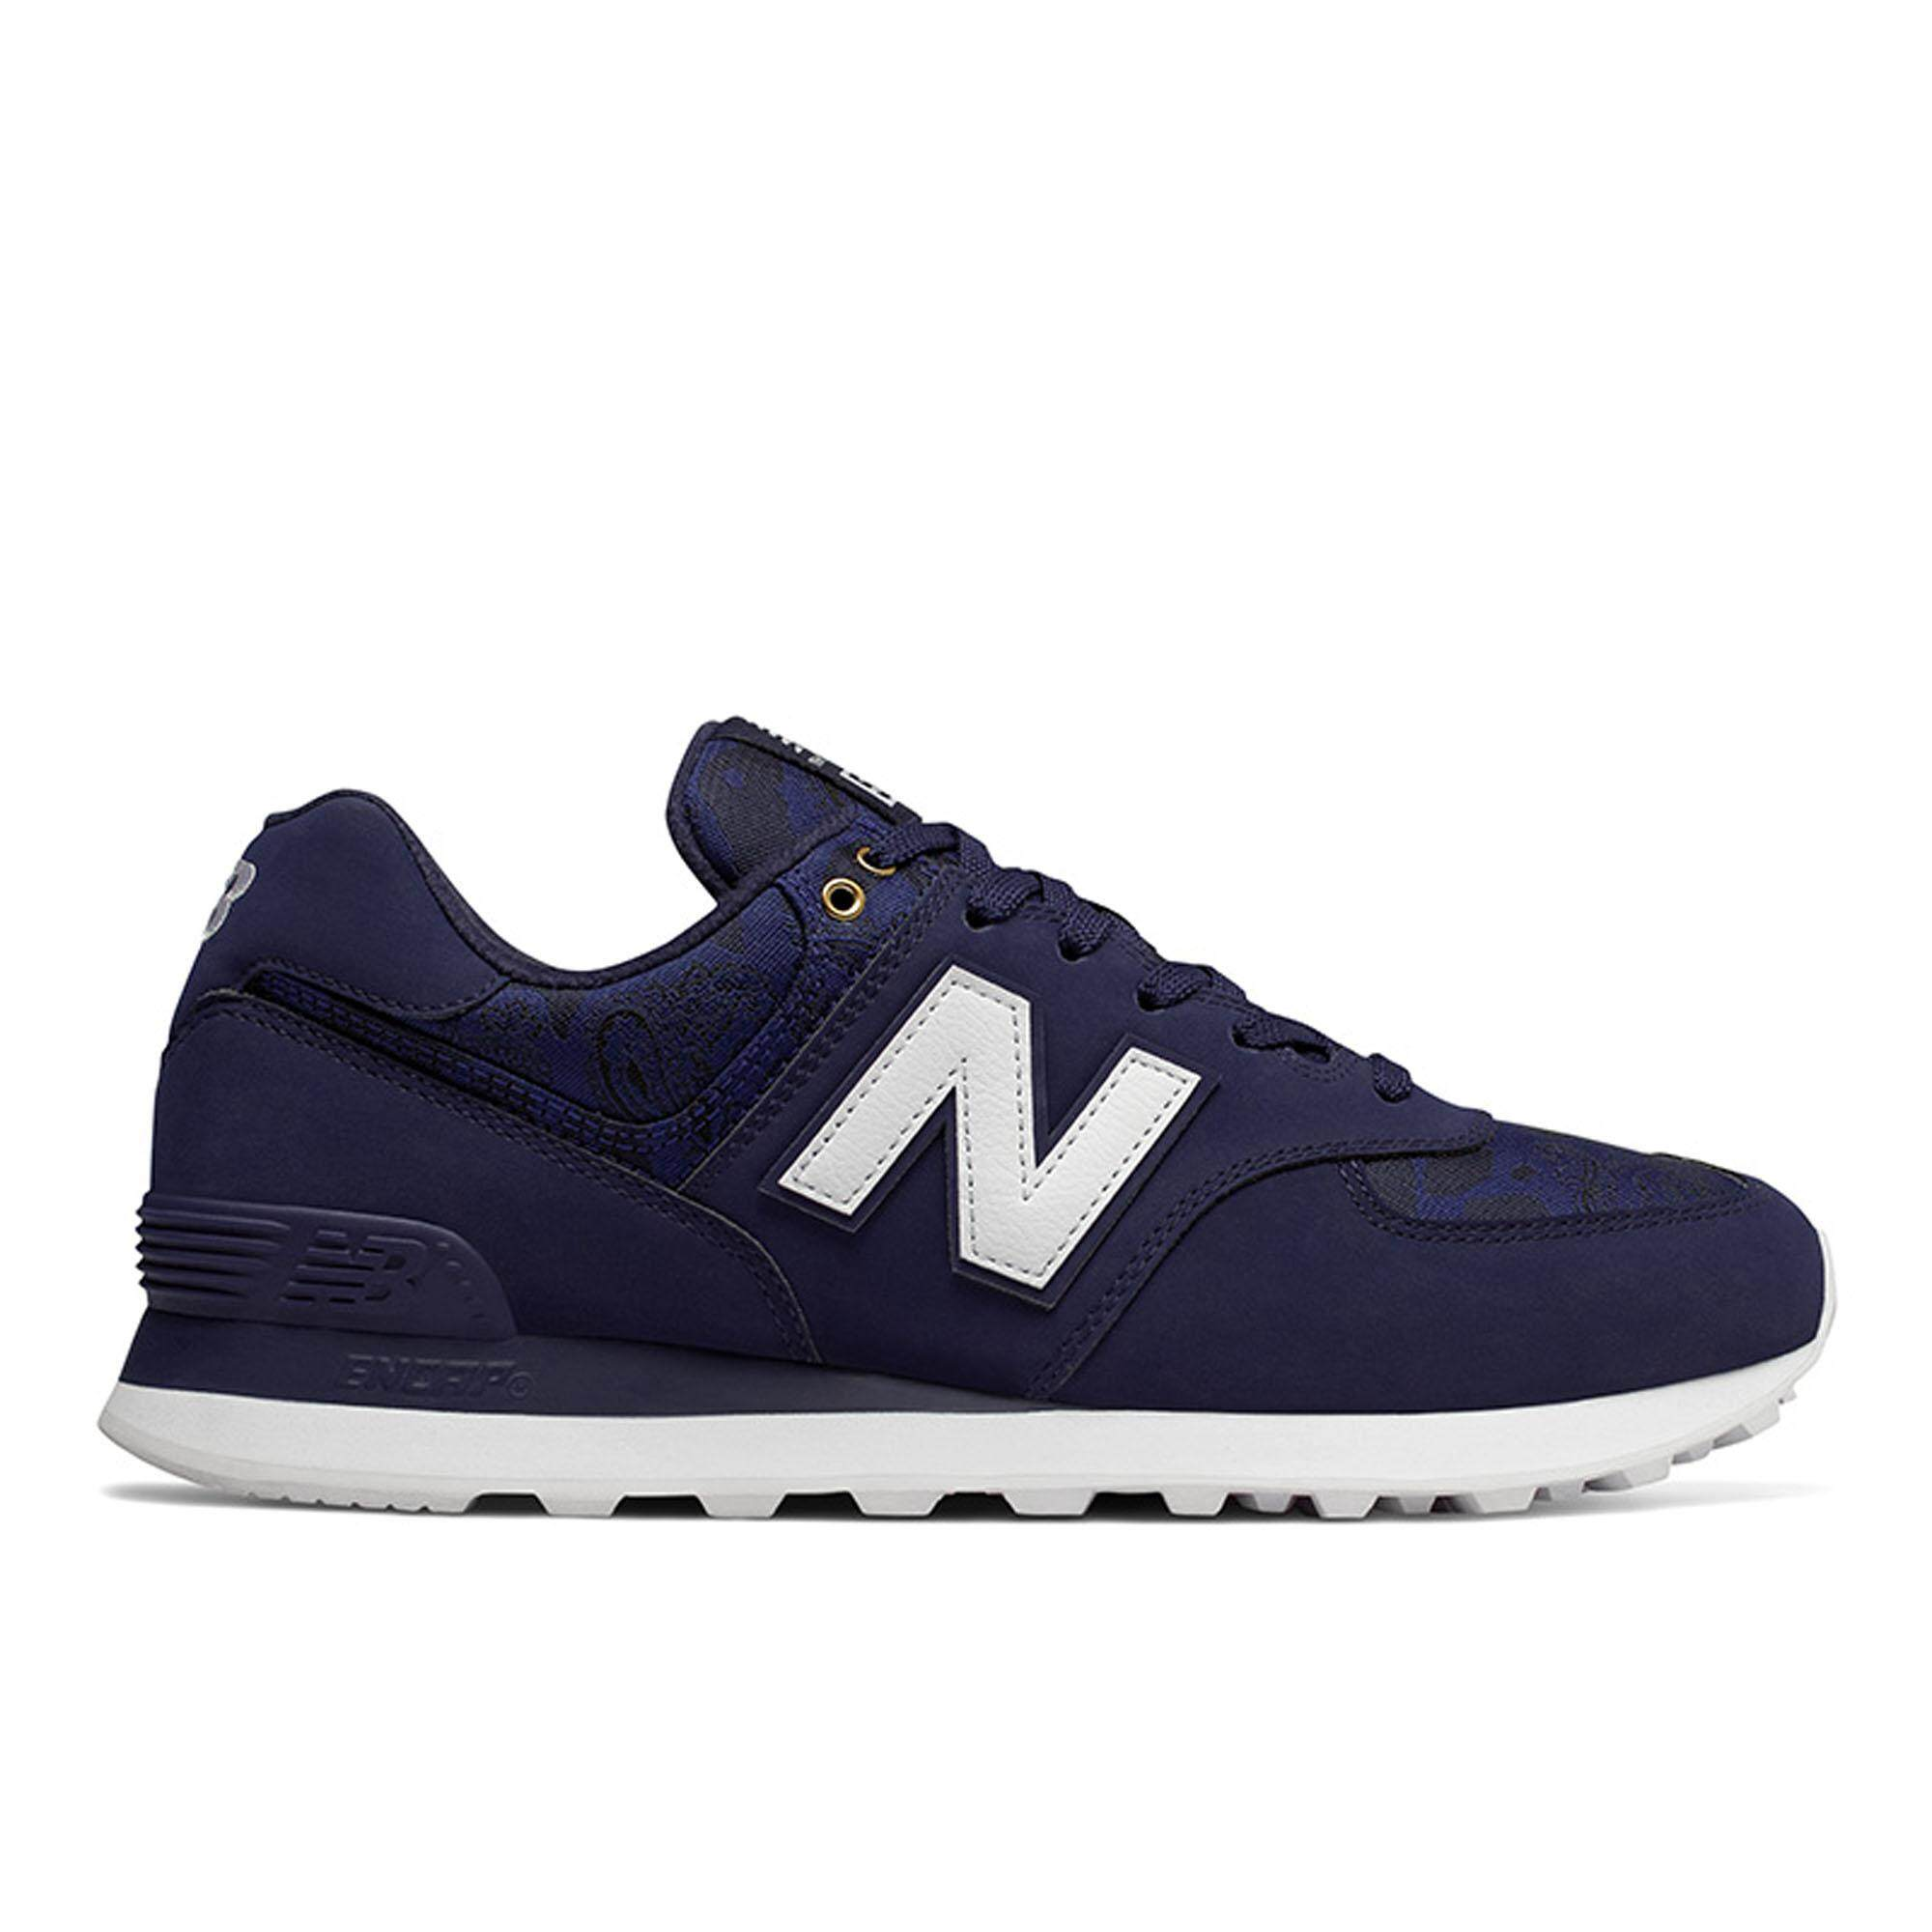 3eb4195f1ae8b New Balance Shoes for the Best Price in Malaysia